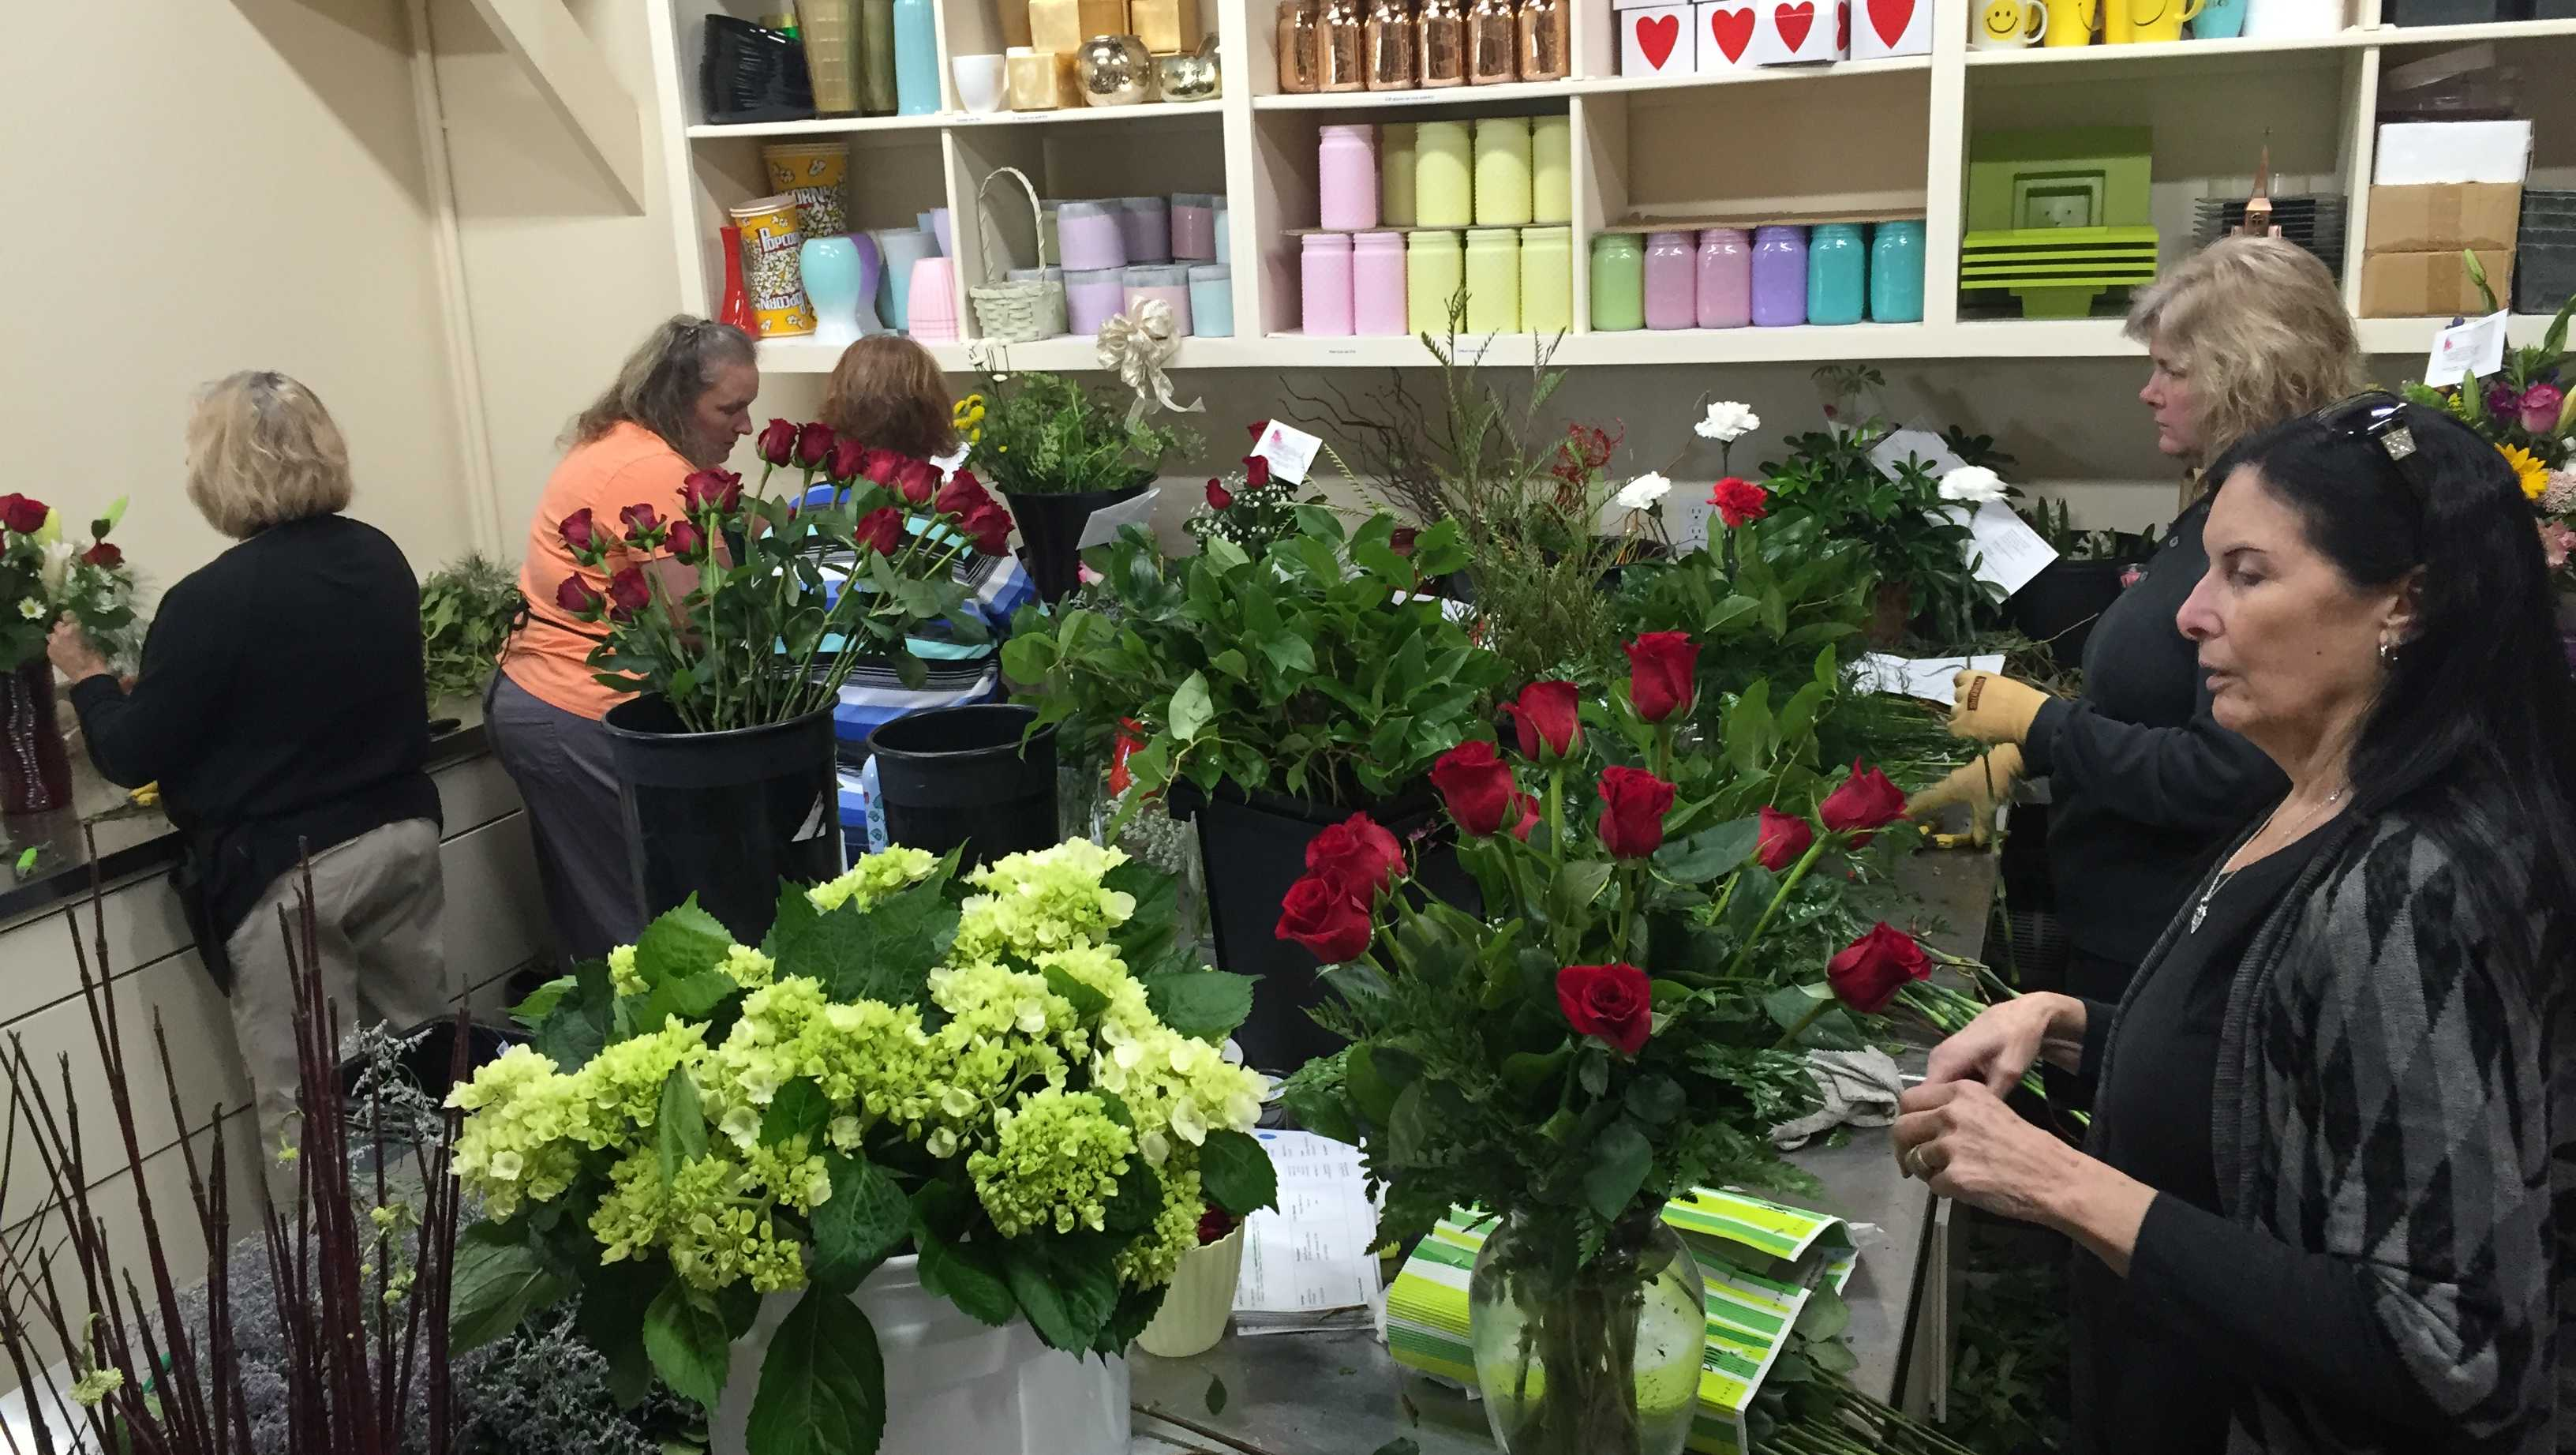 NWA Florist Prep For Valentine's Day